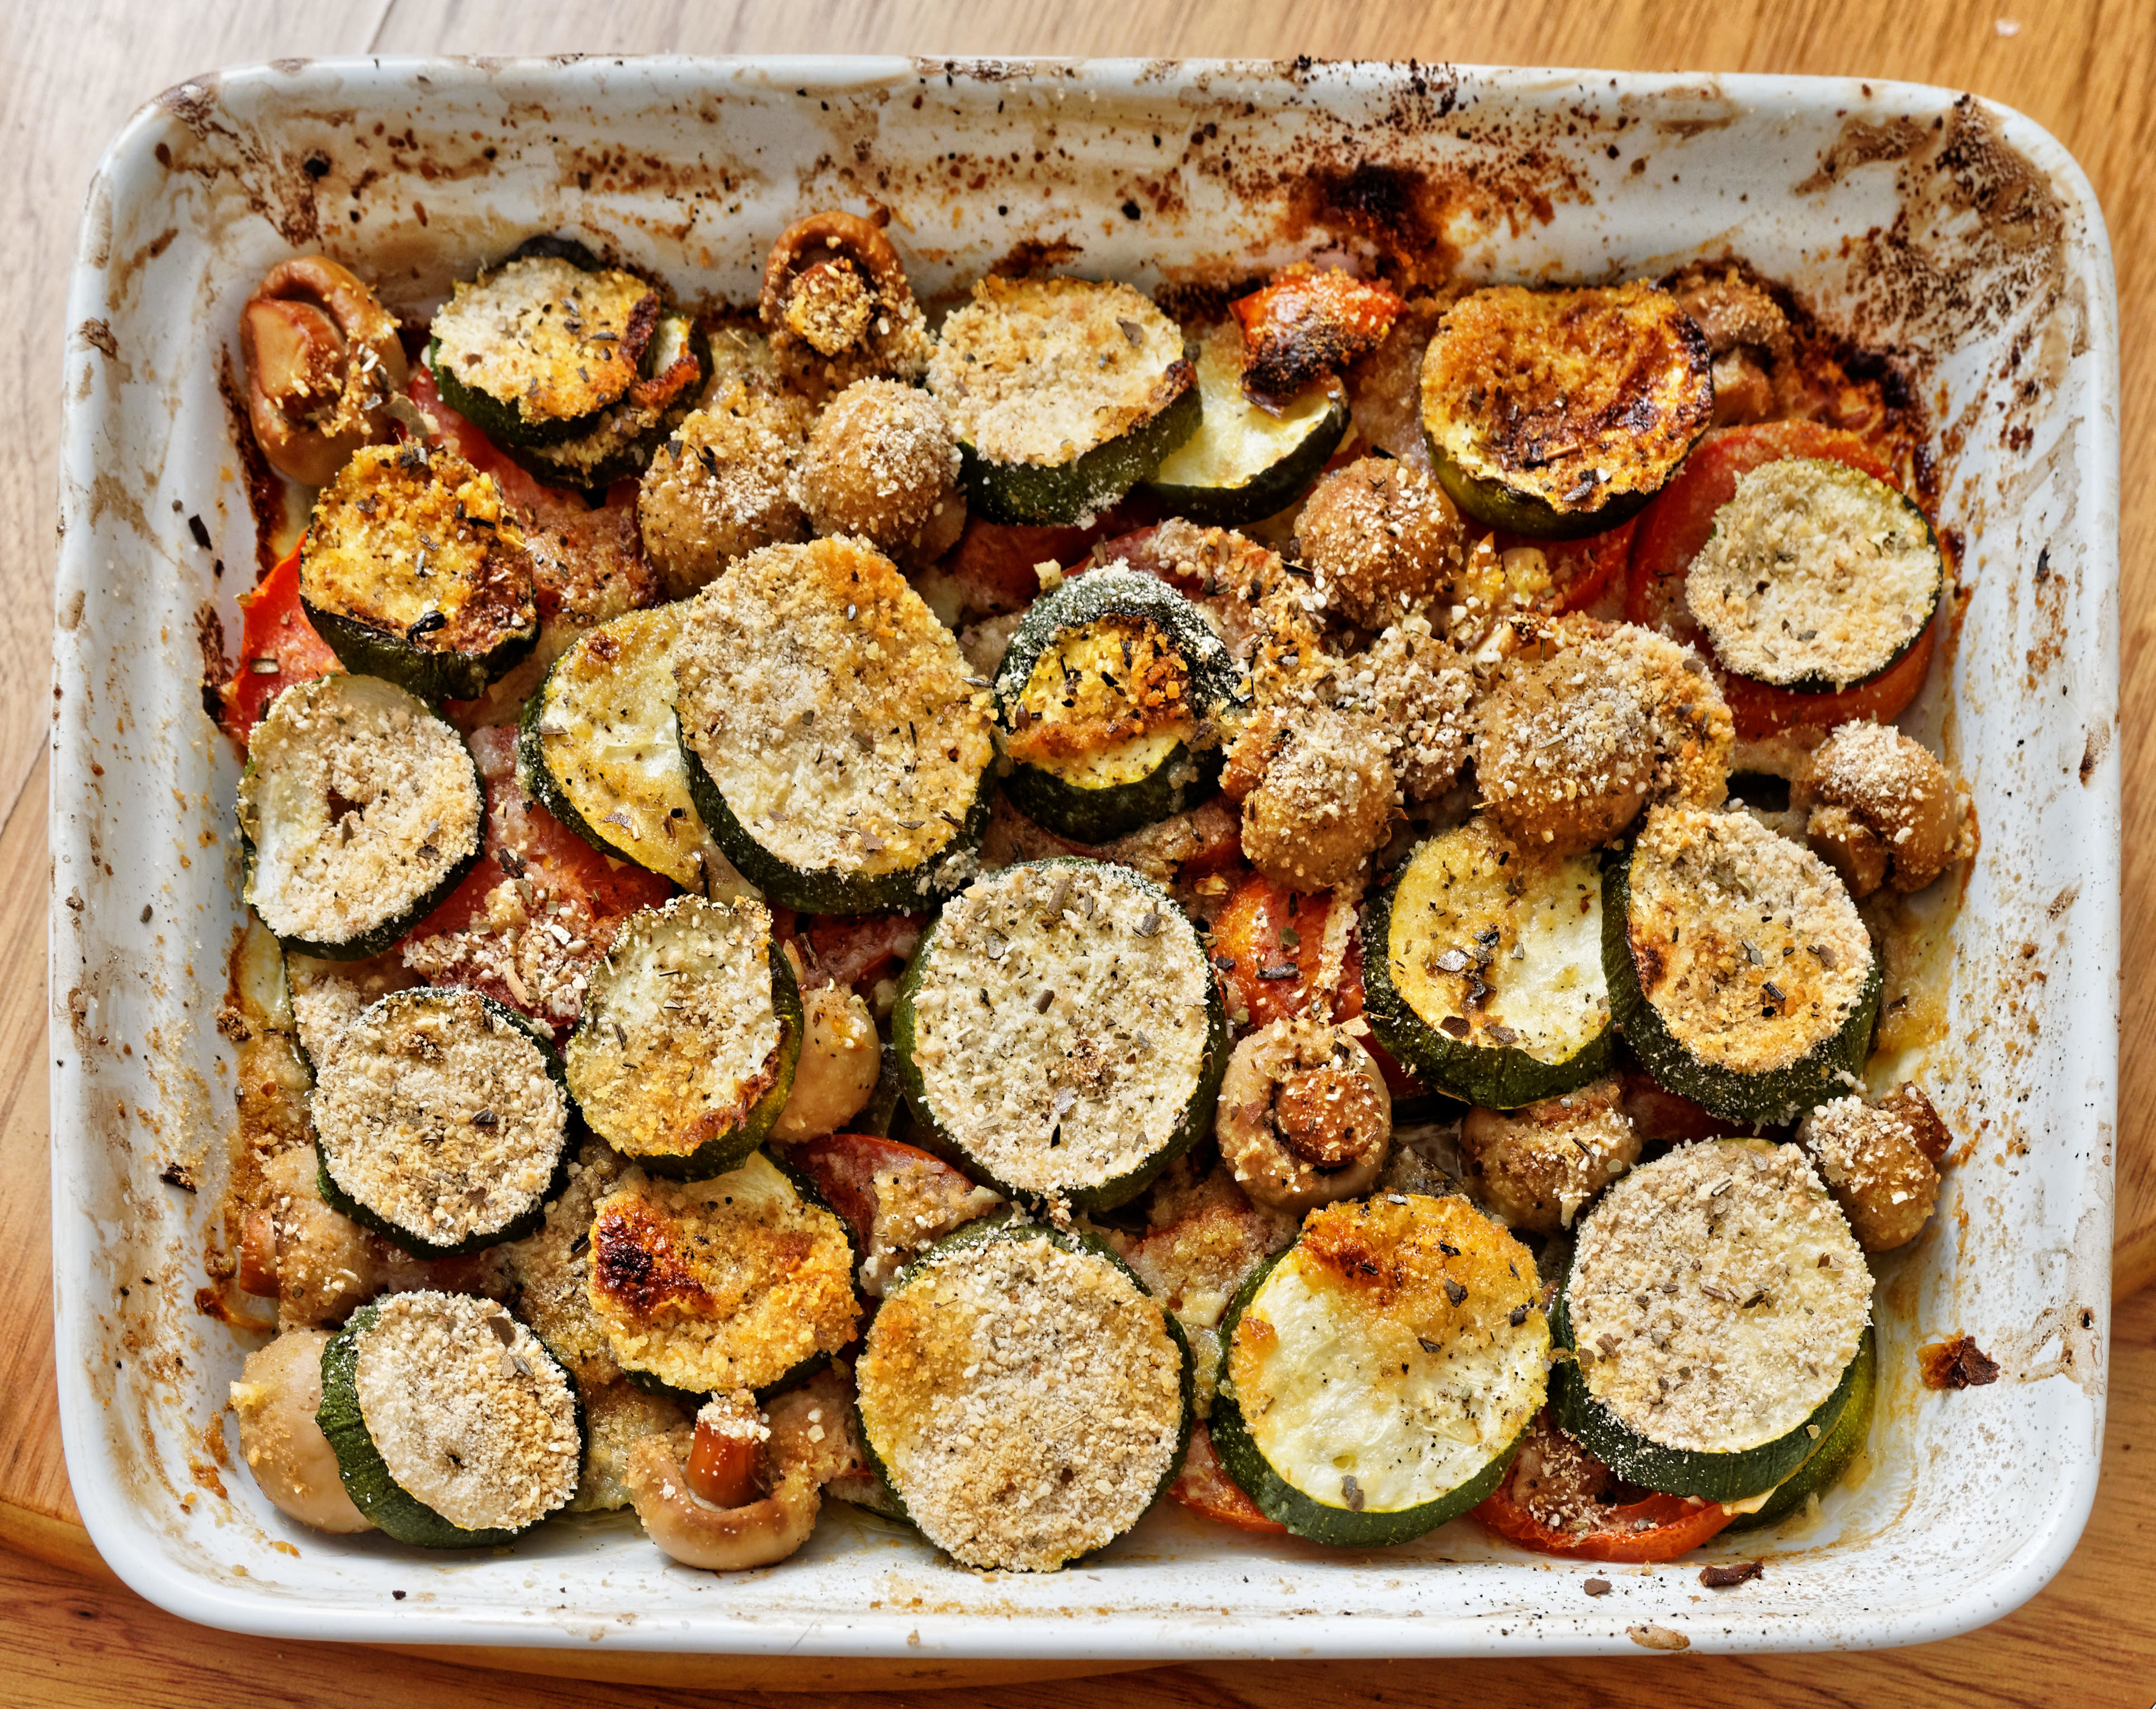 Courgettes-tomatoes-4.jpeg